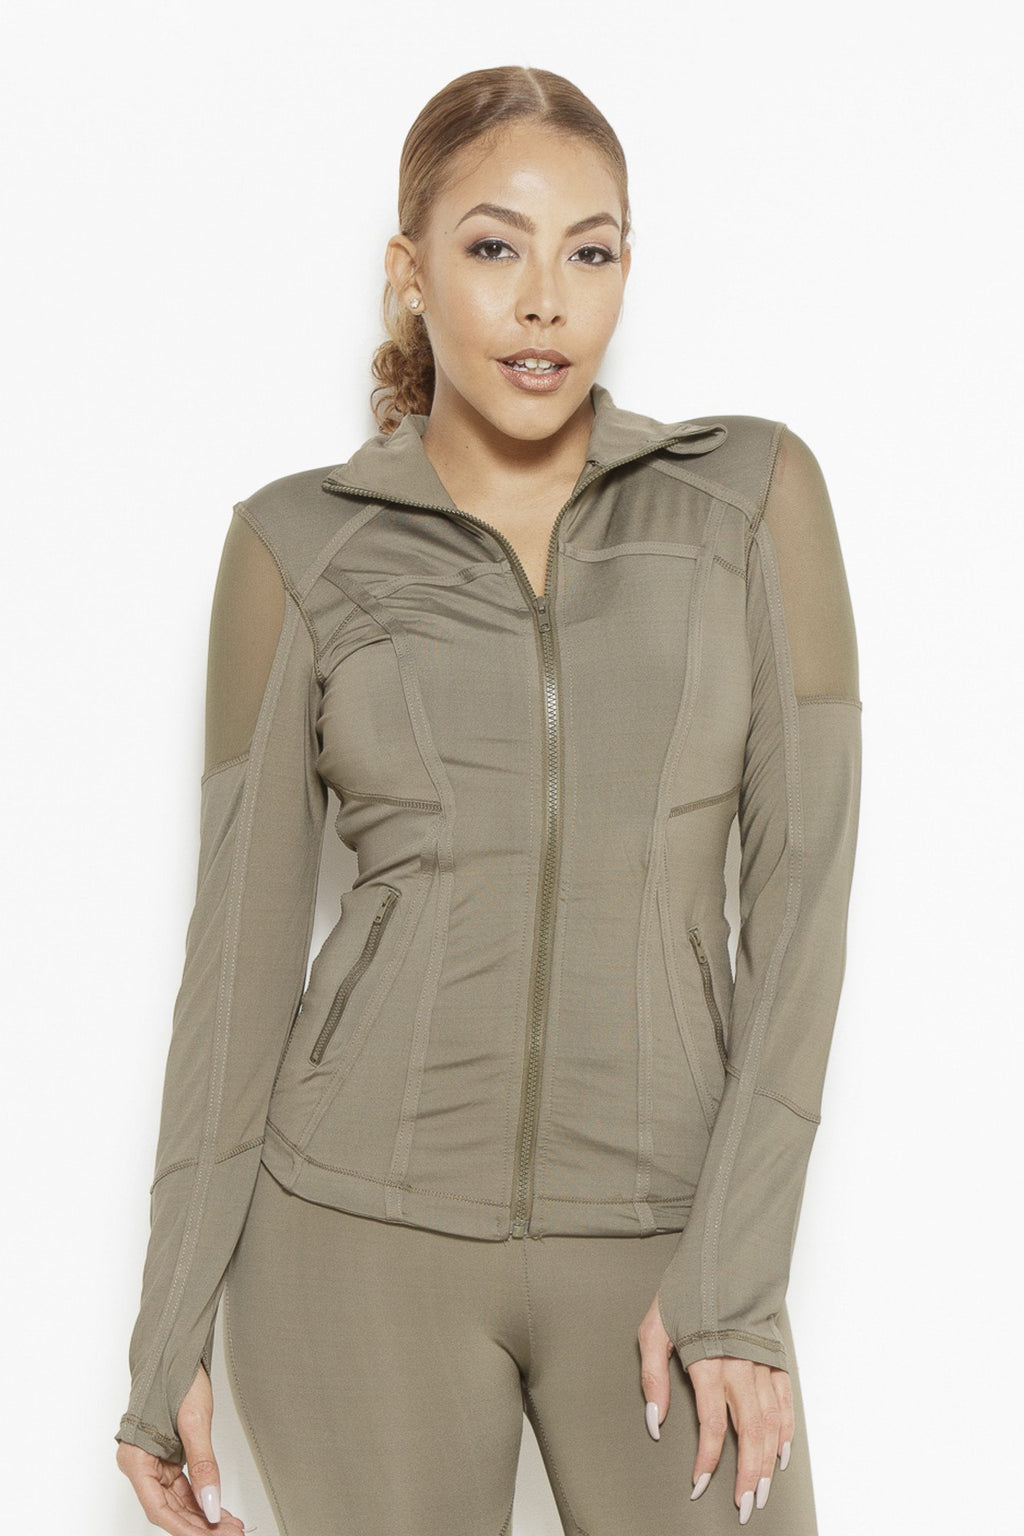 Vibes of Color Sports Jacket- Olive Green Clothing Fair Shade S Olive Green 87% Polyester, 13% Elastane